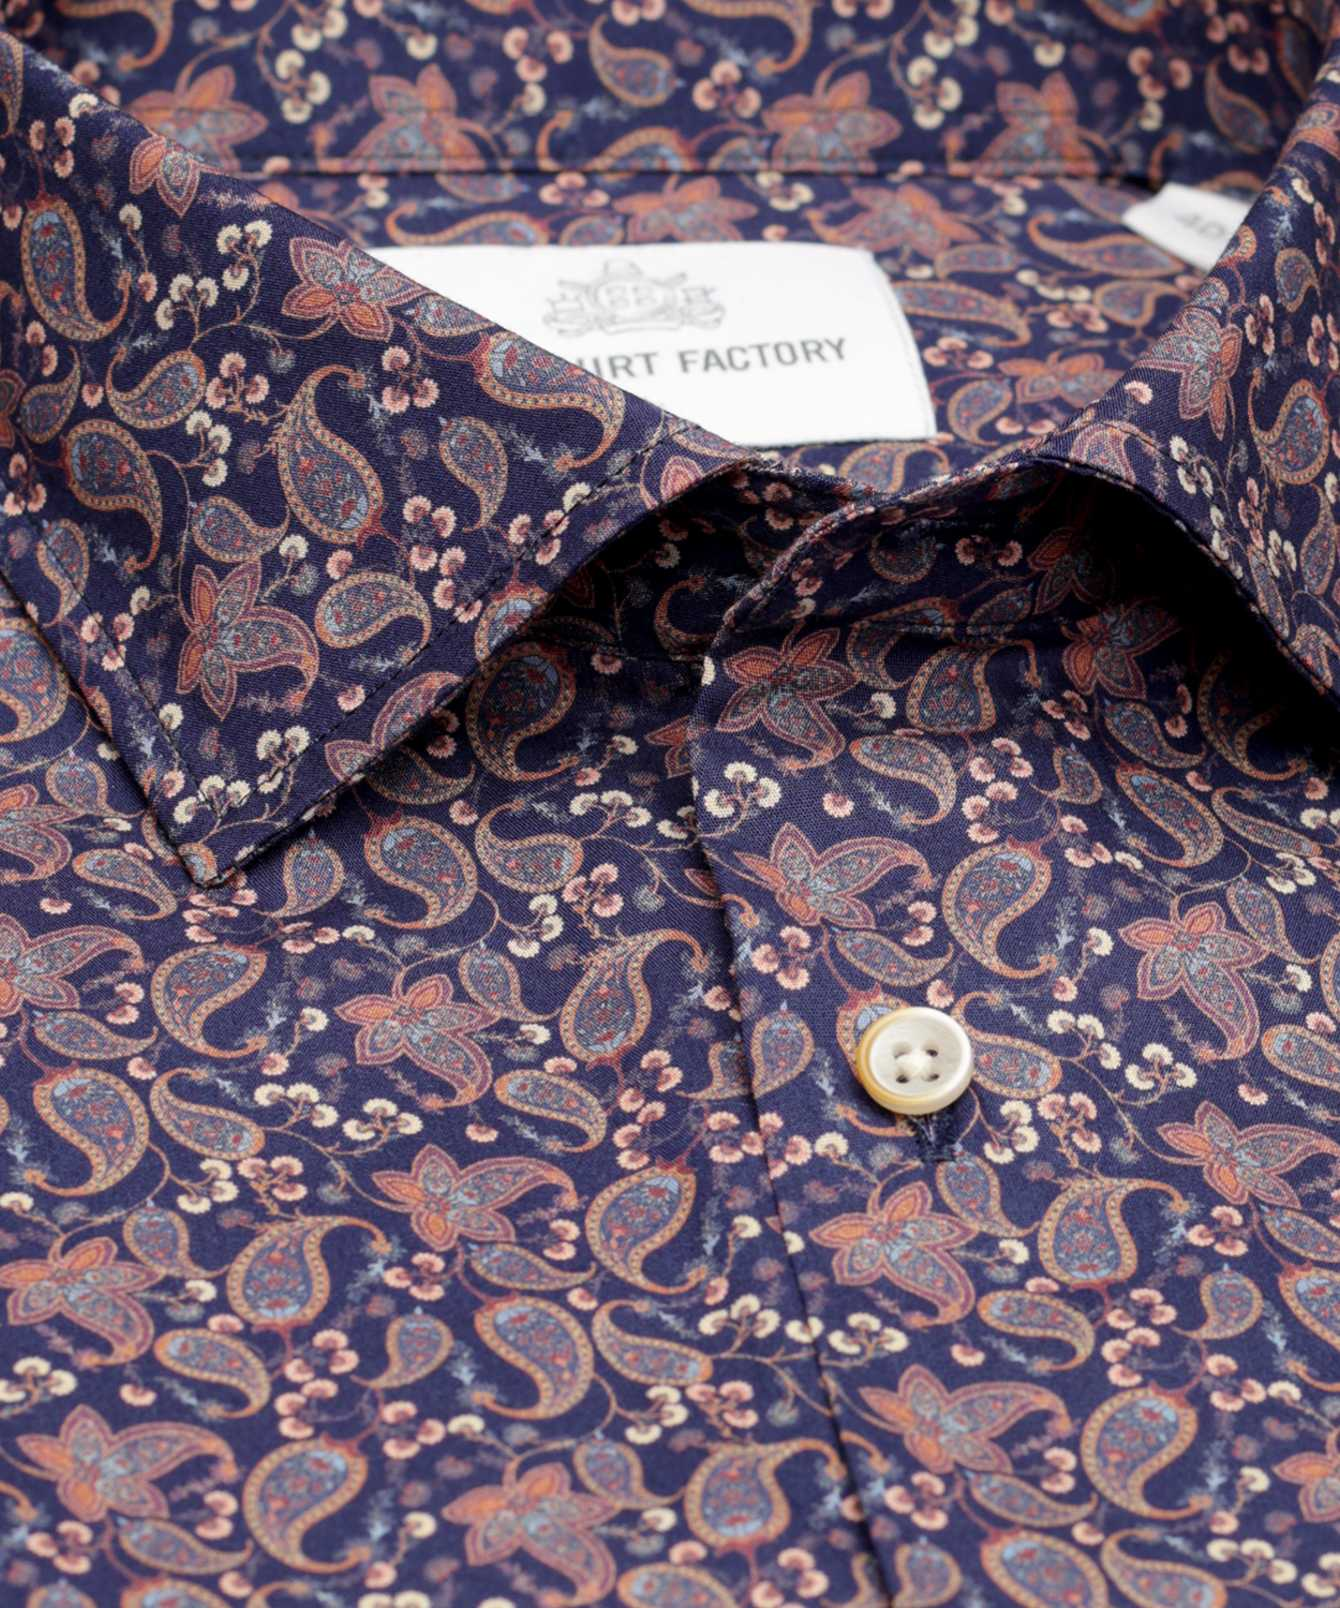 Shirt St.John Paisley The Shirt Factory